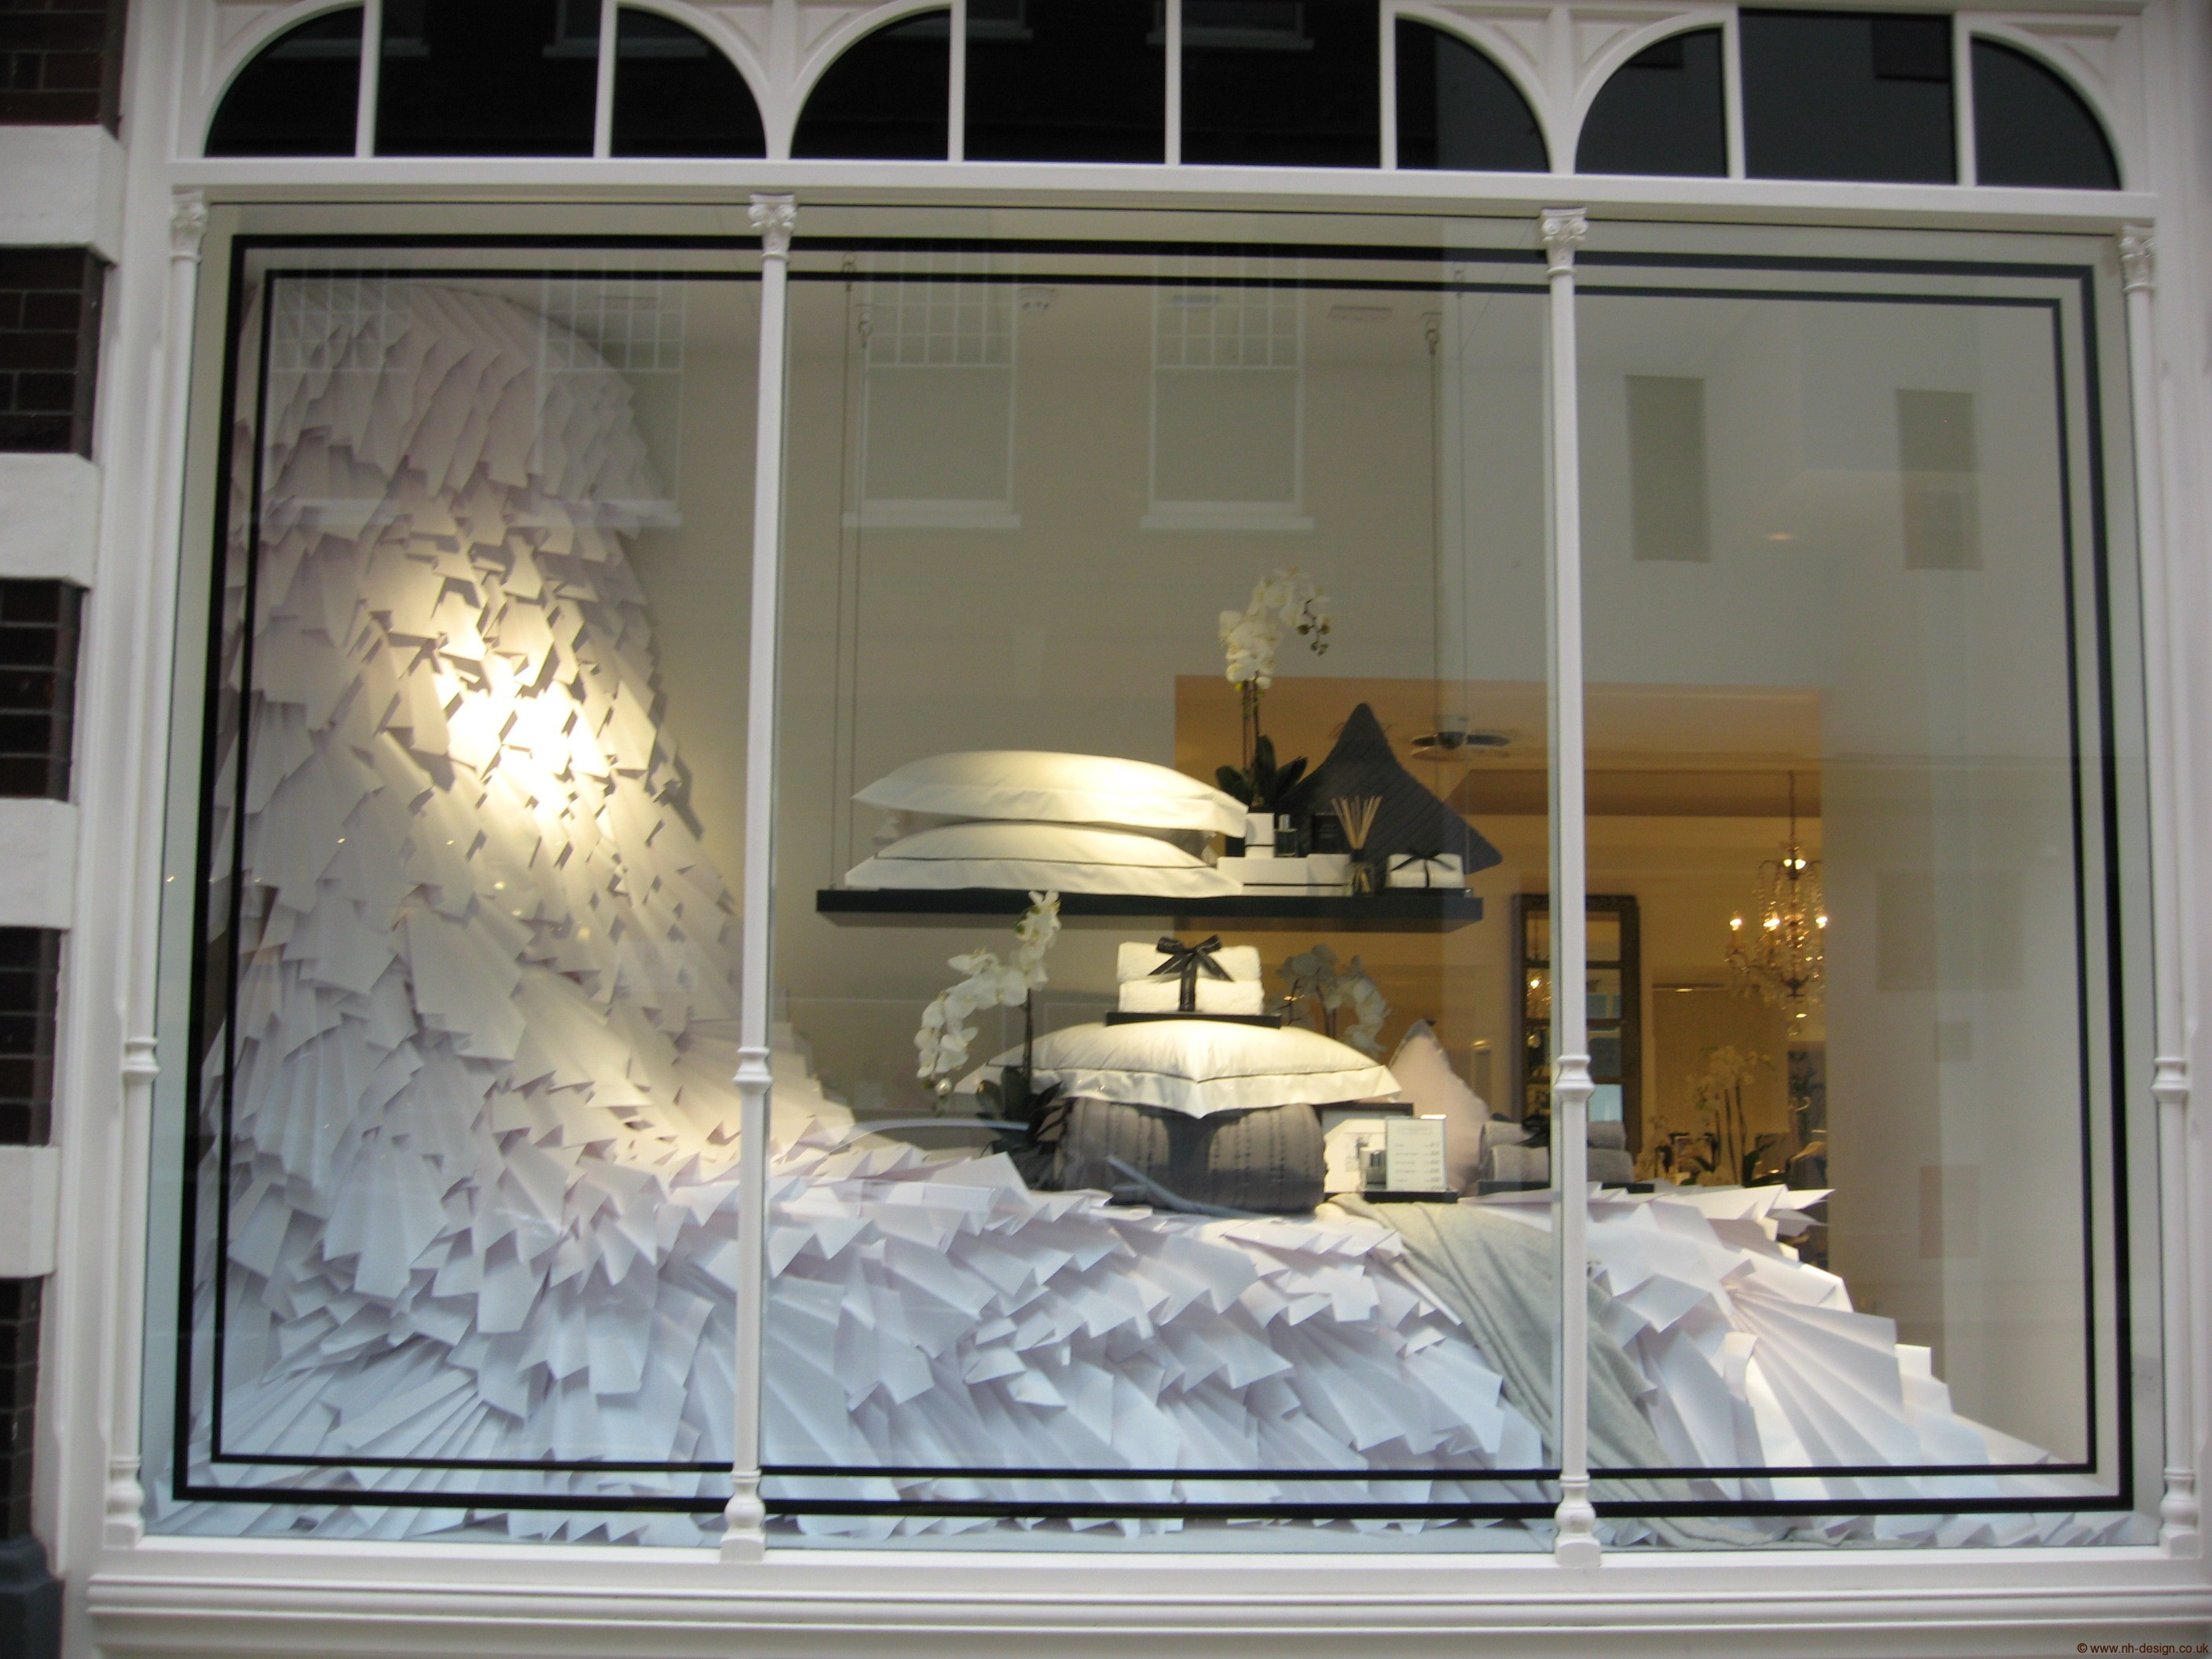 White company window nicky haslam design for Window design company